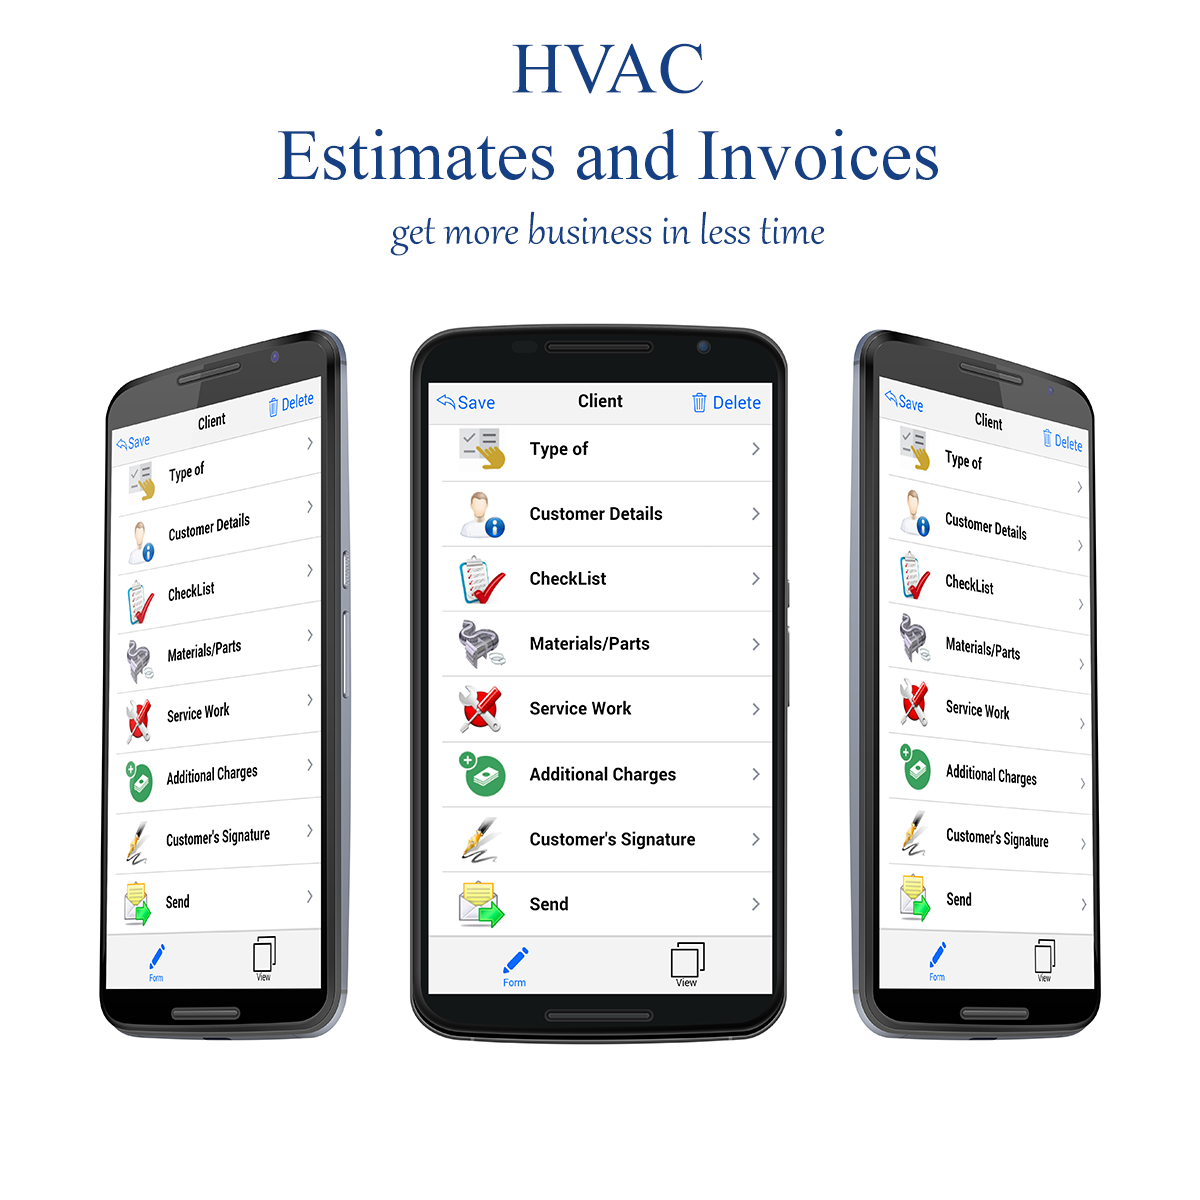 HVAC Estimates/Invoices